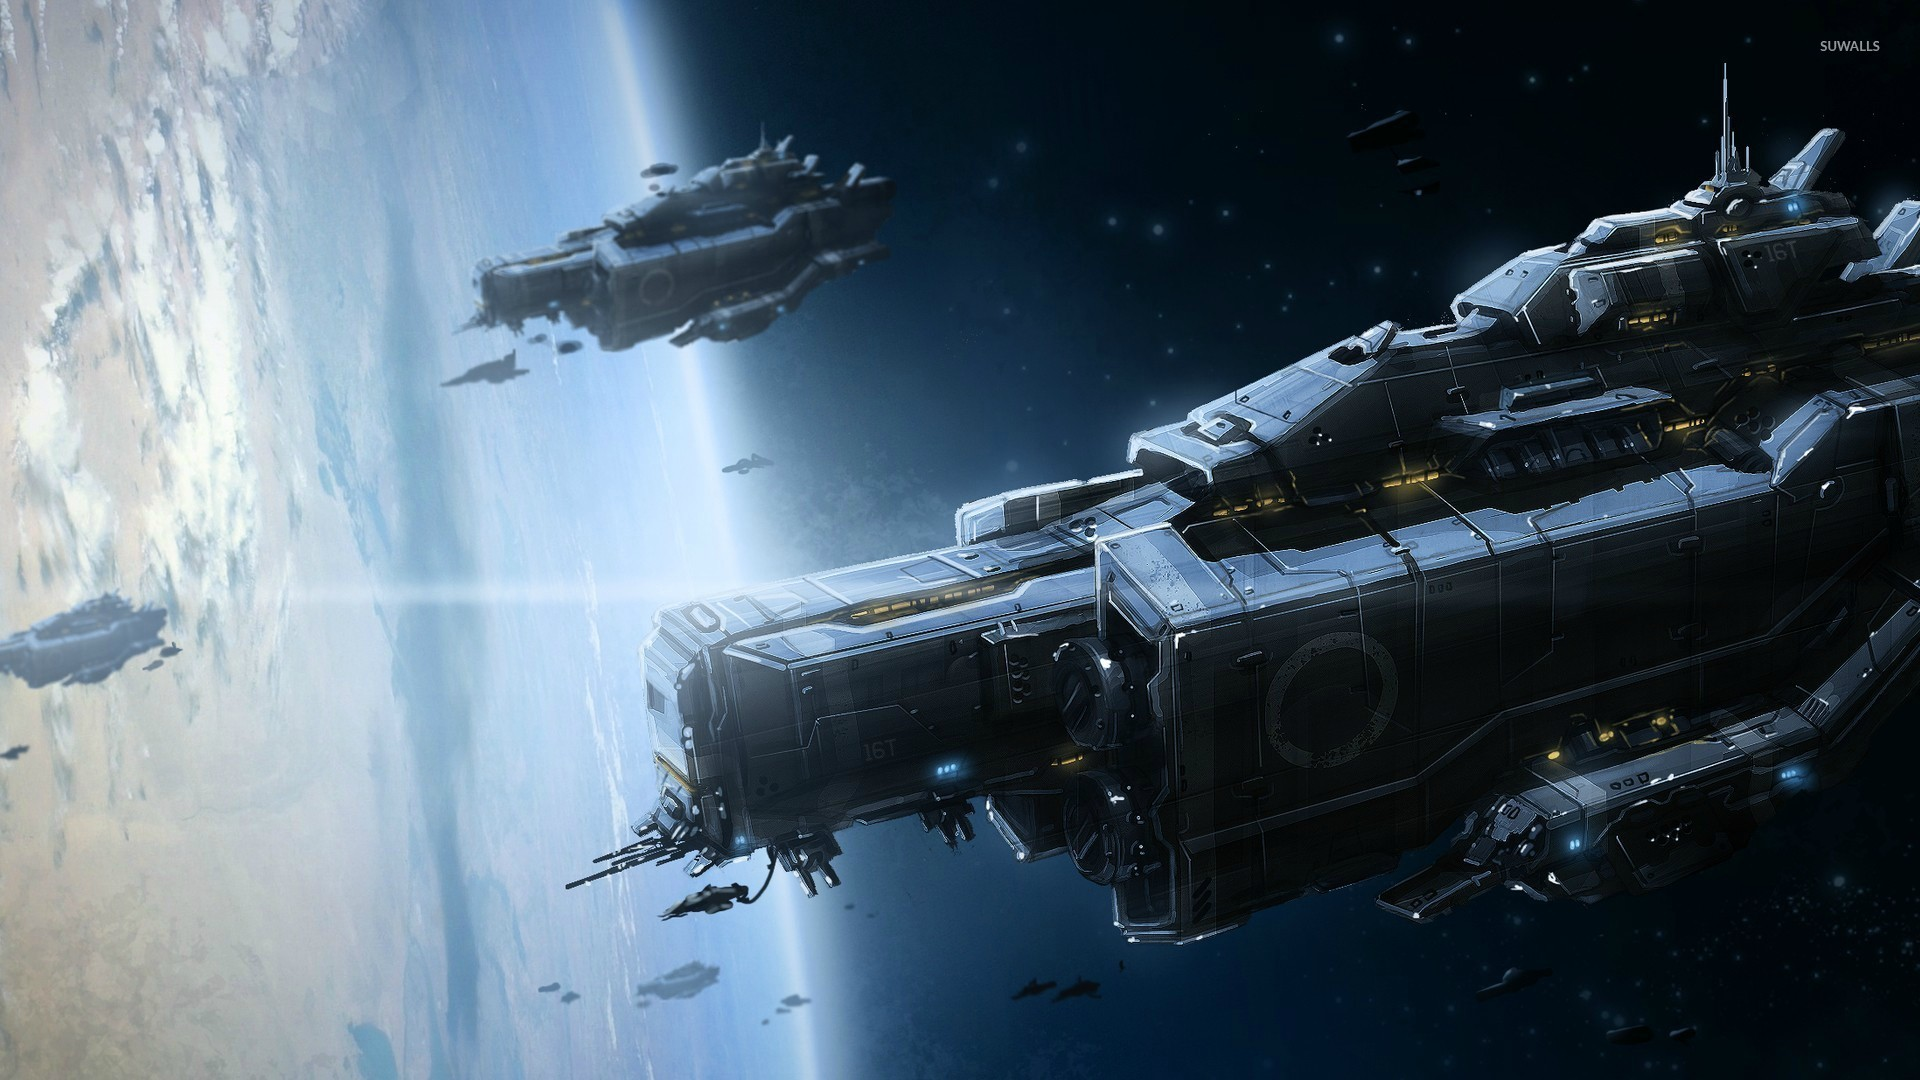 Military Spaceships Orbiting The Planet Wallpaper Fantasy